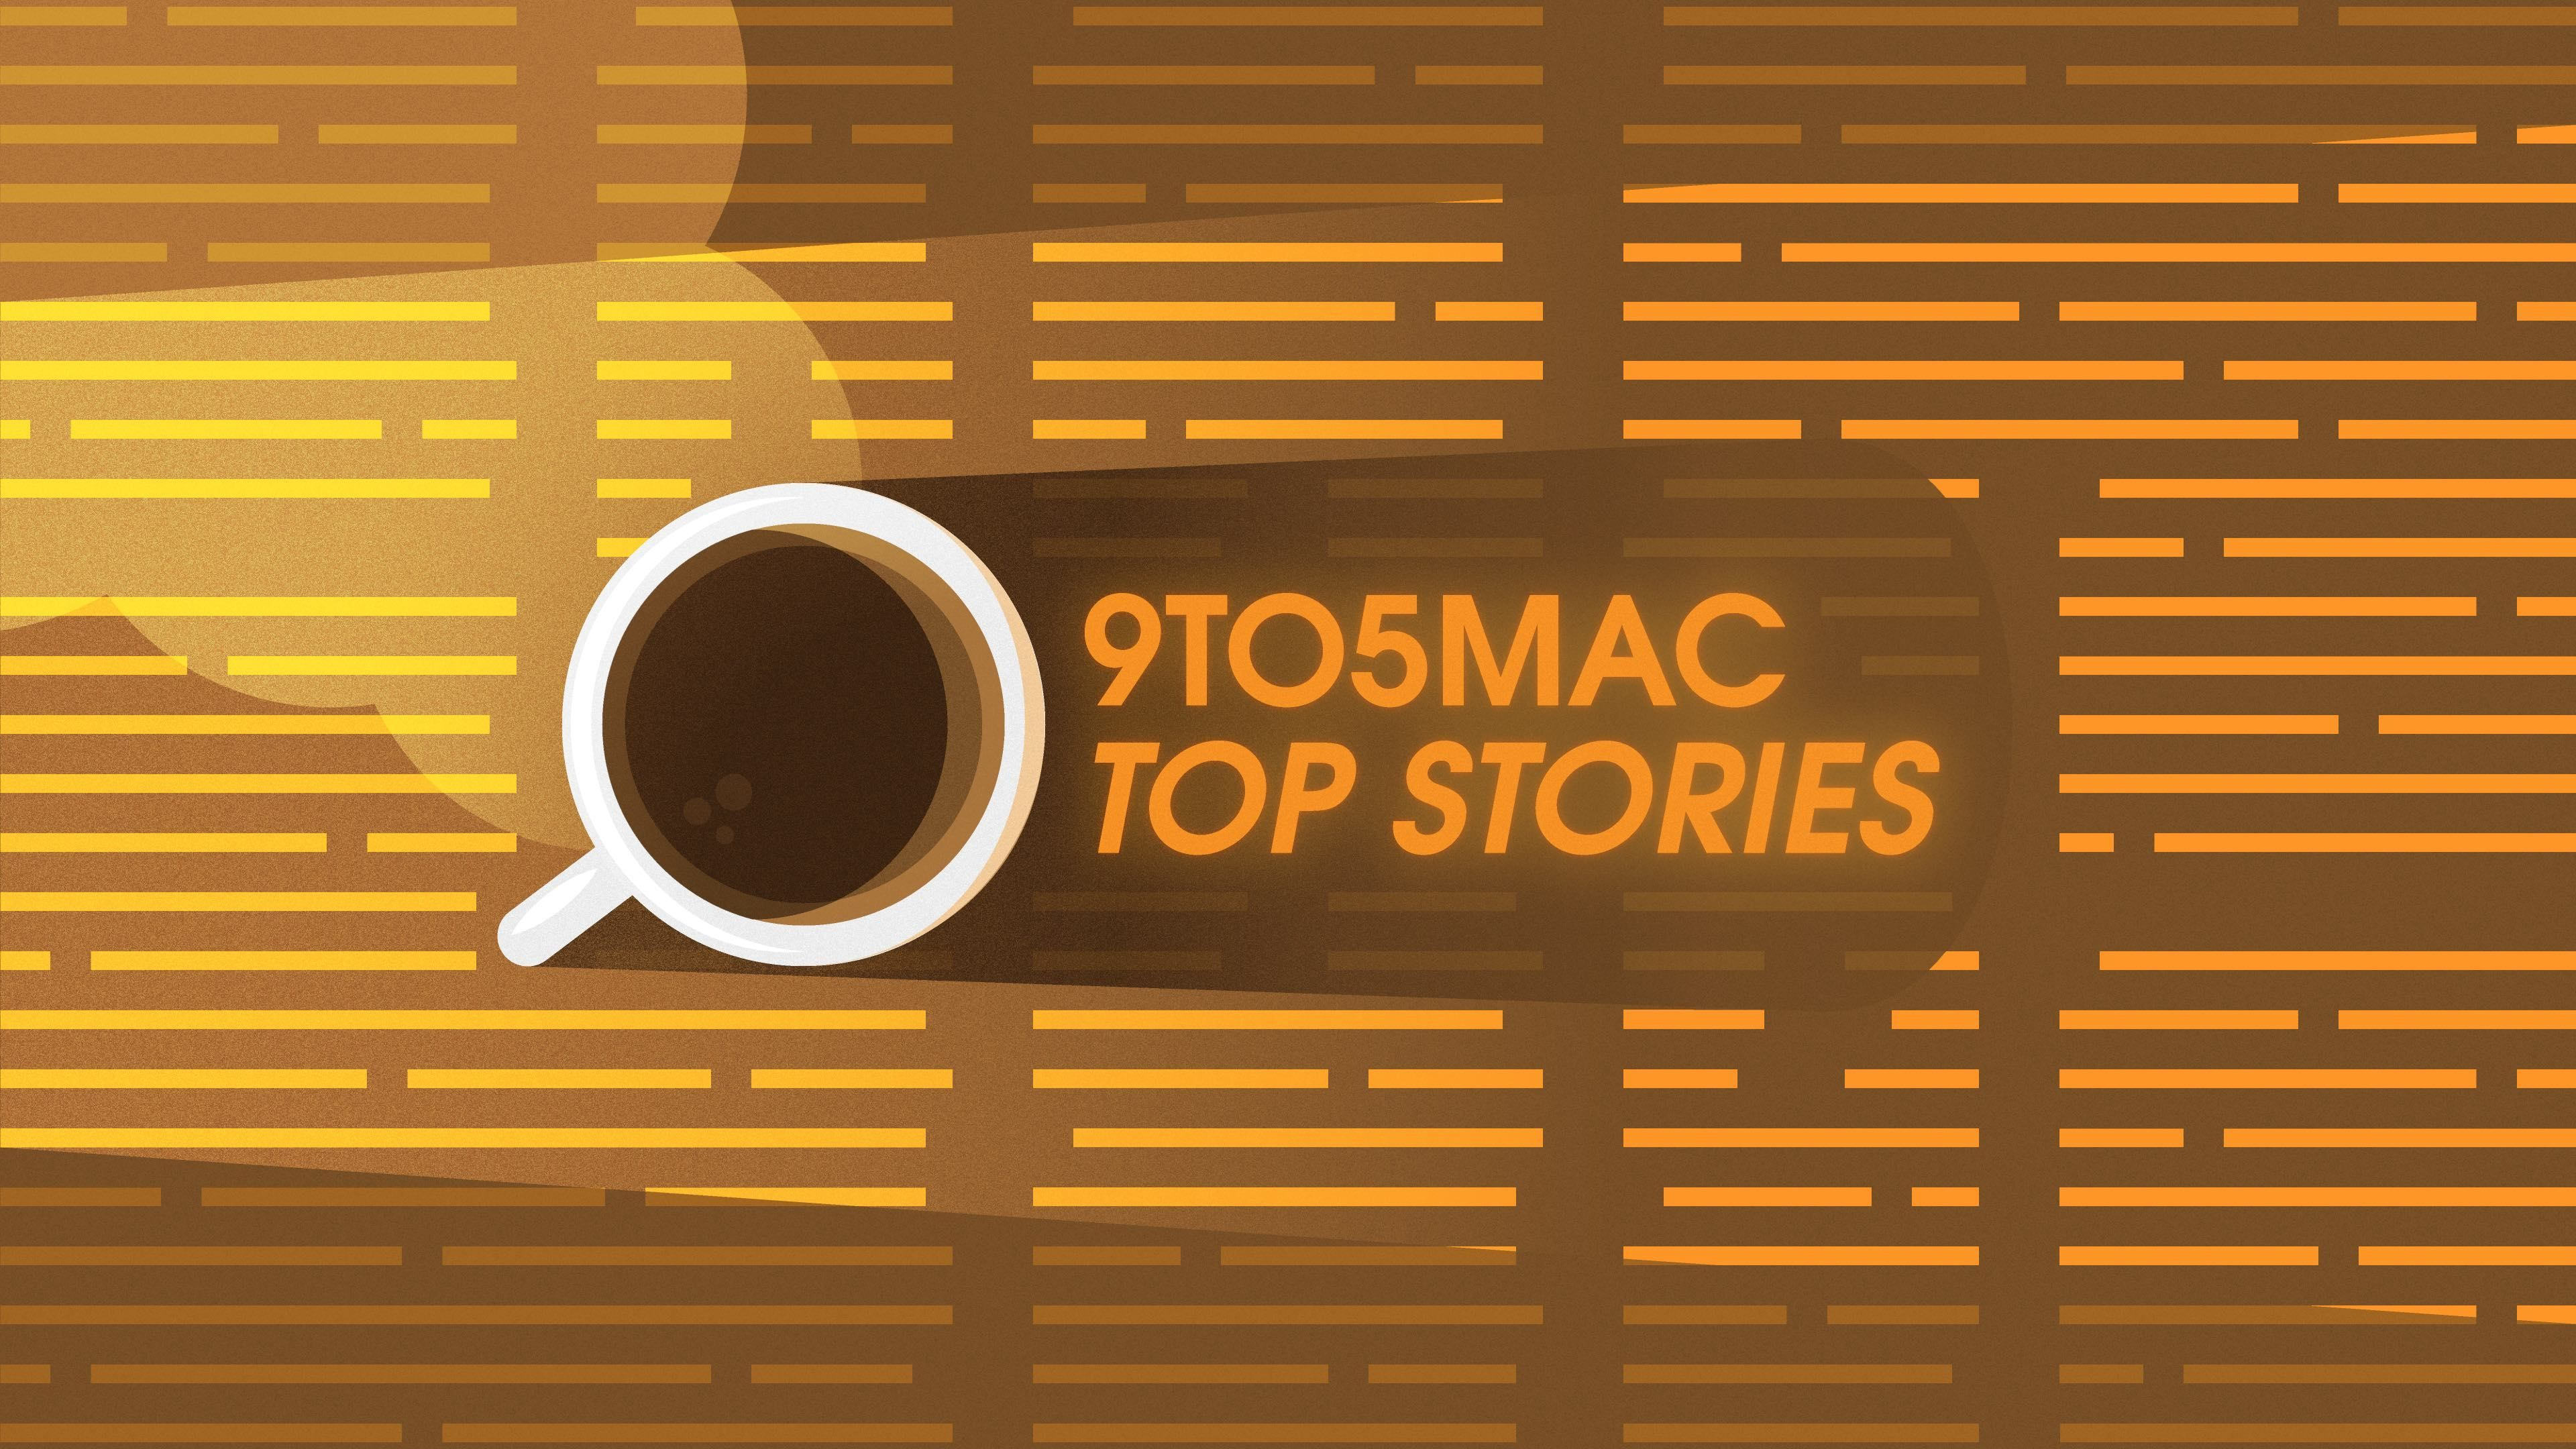 This week's top stories AirPods Pro, 16inch MacBook Pro